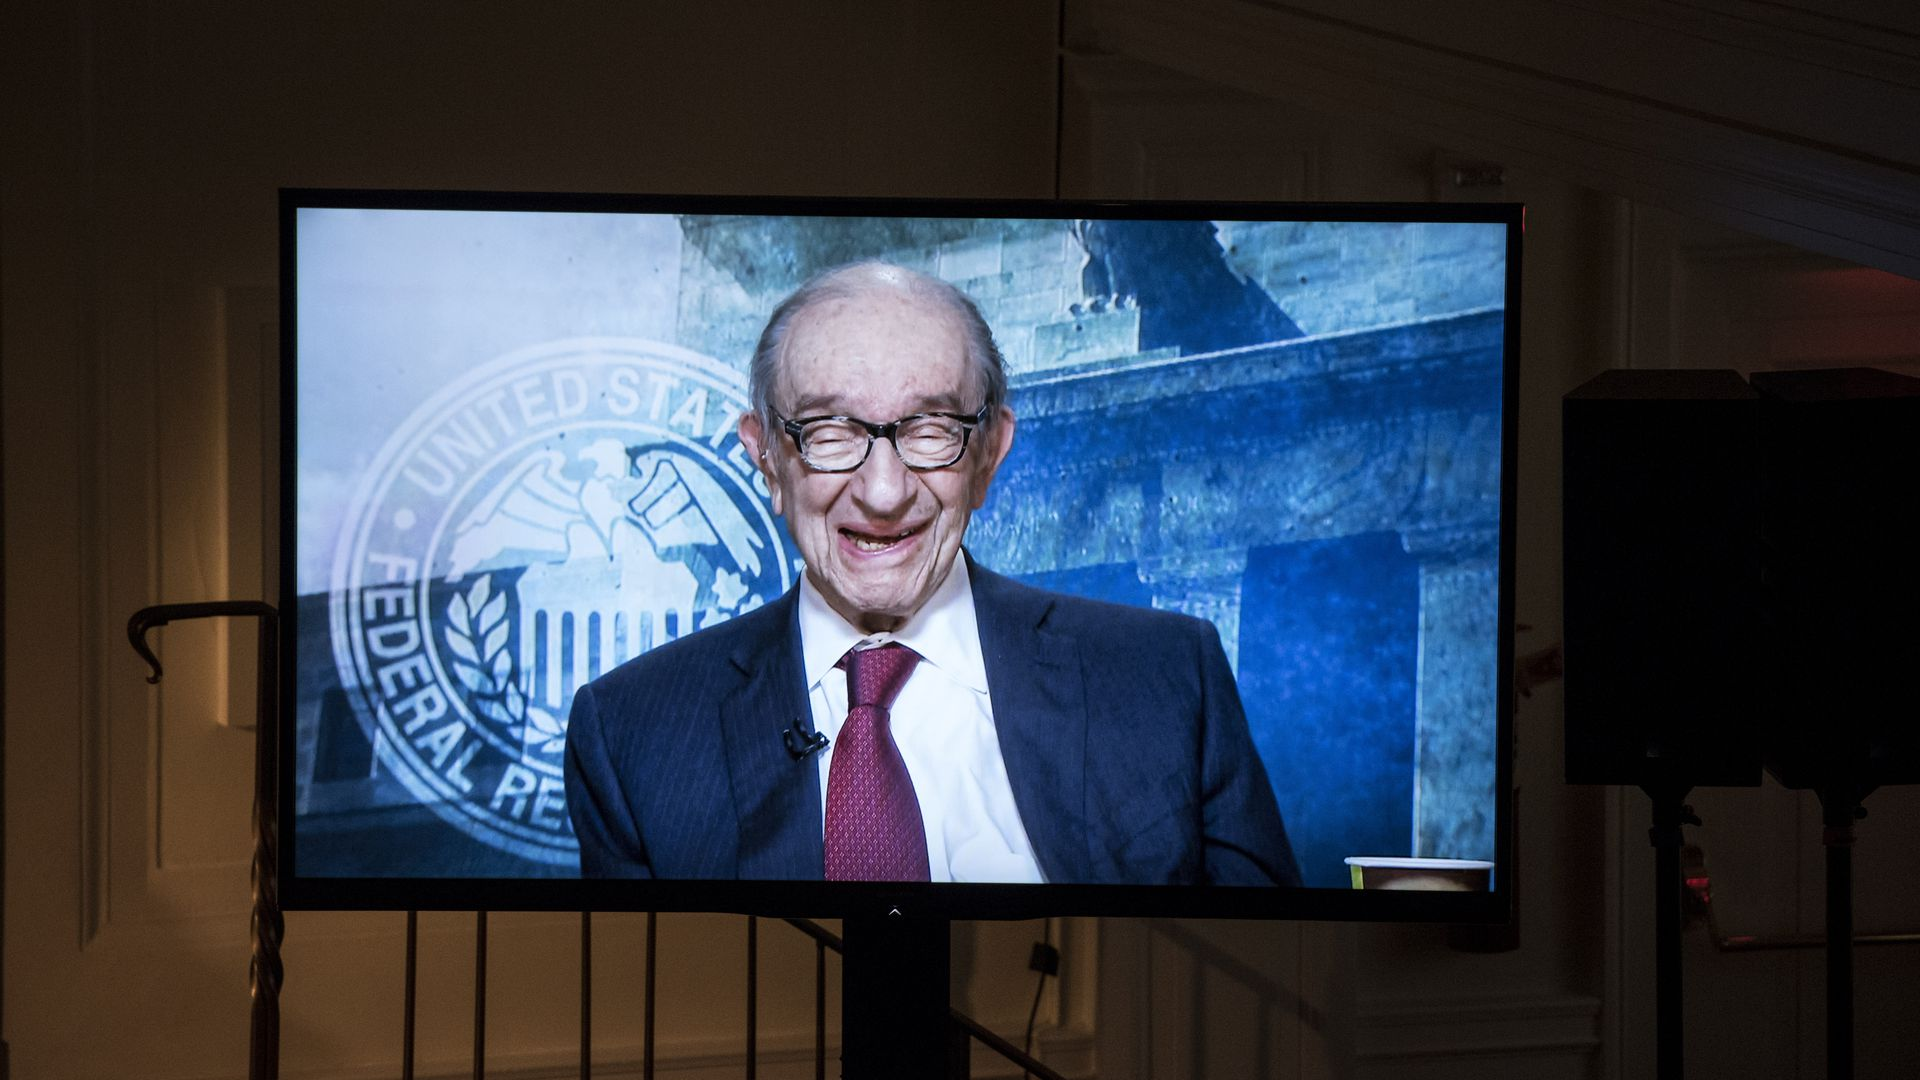 Alan Greenspan speaks via video conference with current Federal Reserve Chair Janet Yellen and former Federal Reserve Chairs Ben Bernanke, Paul A. Volcker.